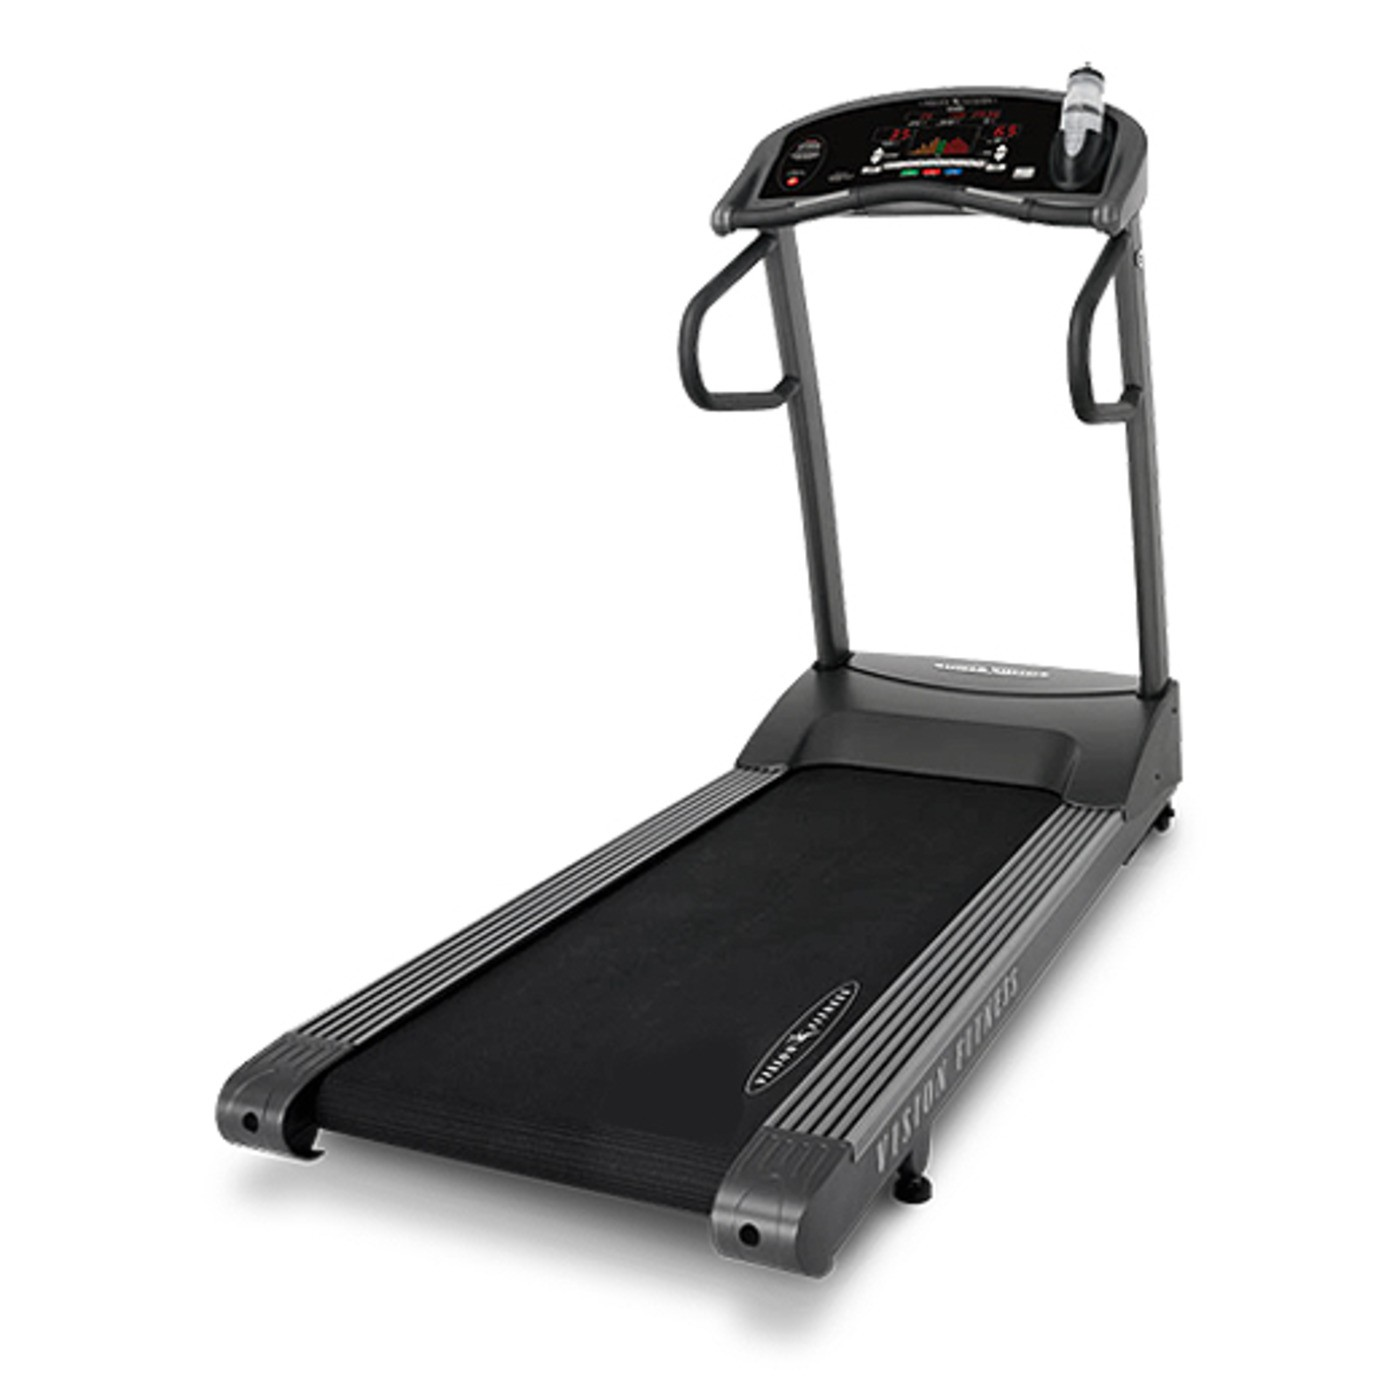 T9700S Full-Platform Treadmill